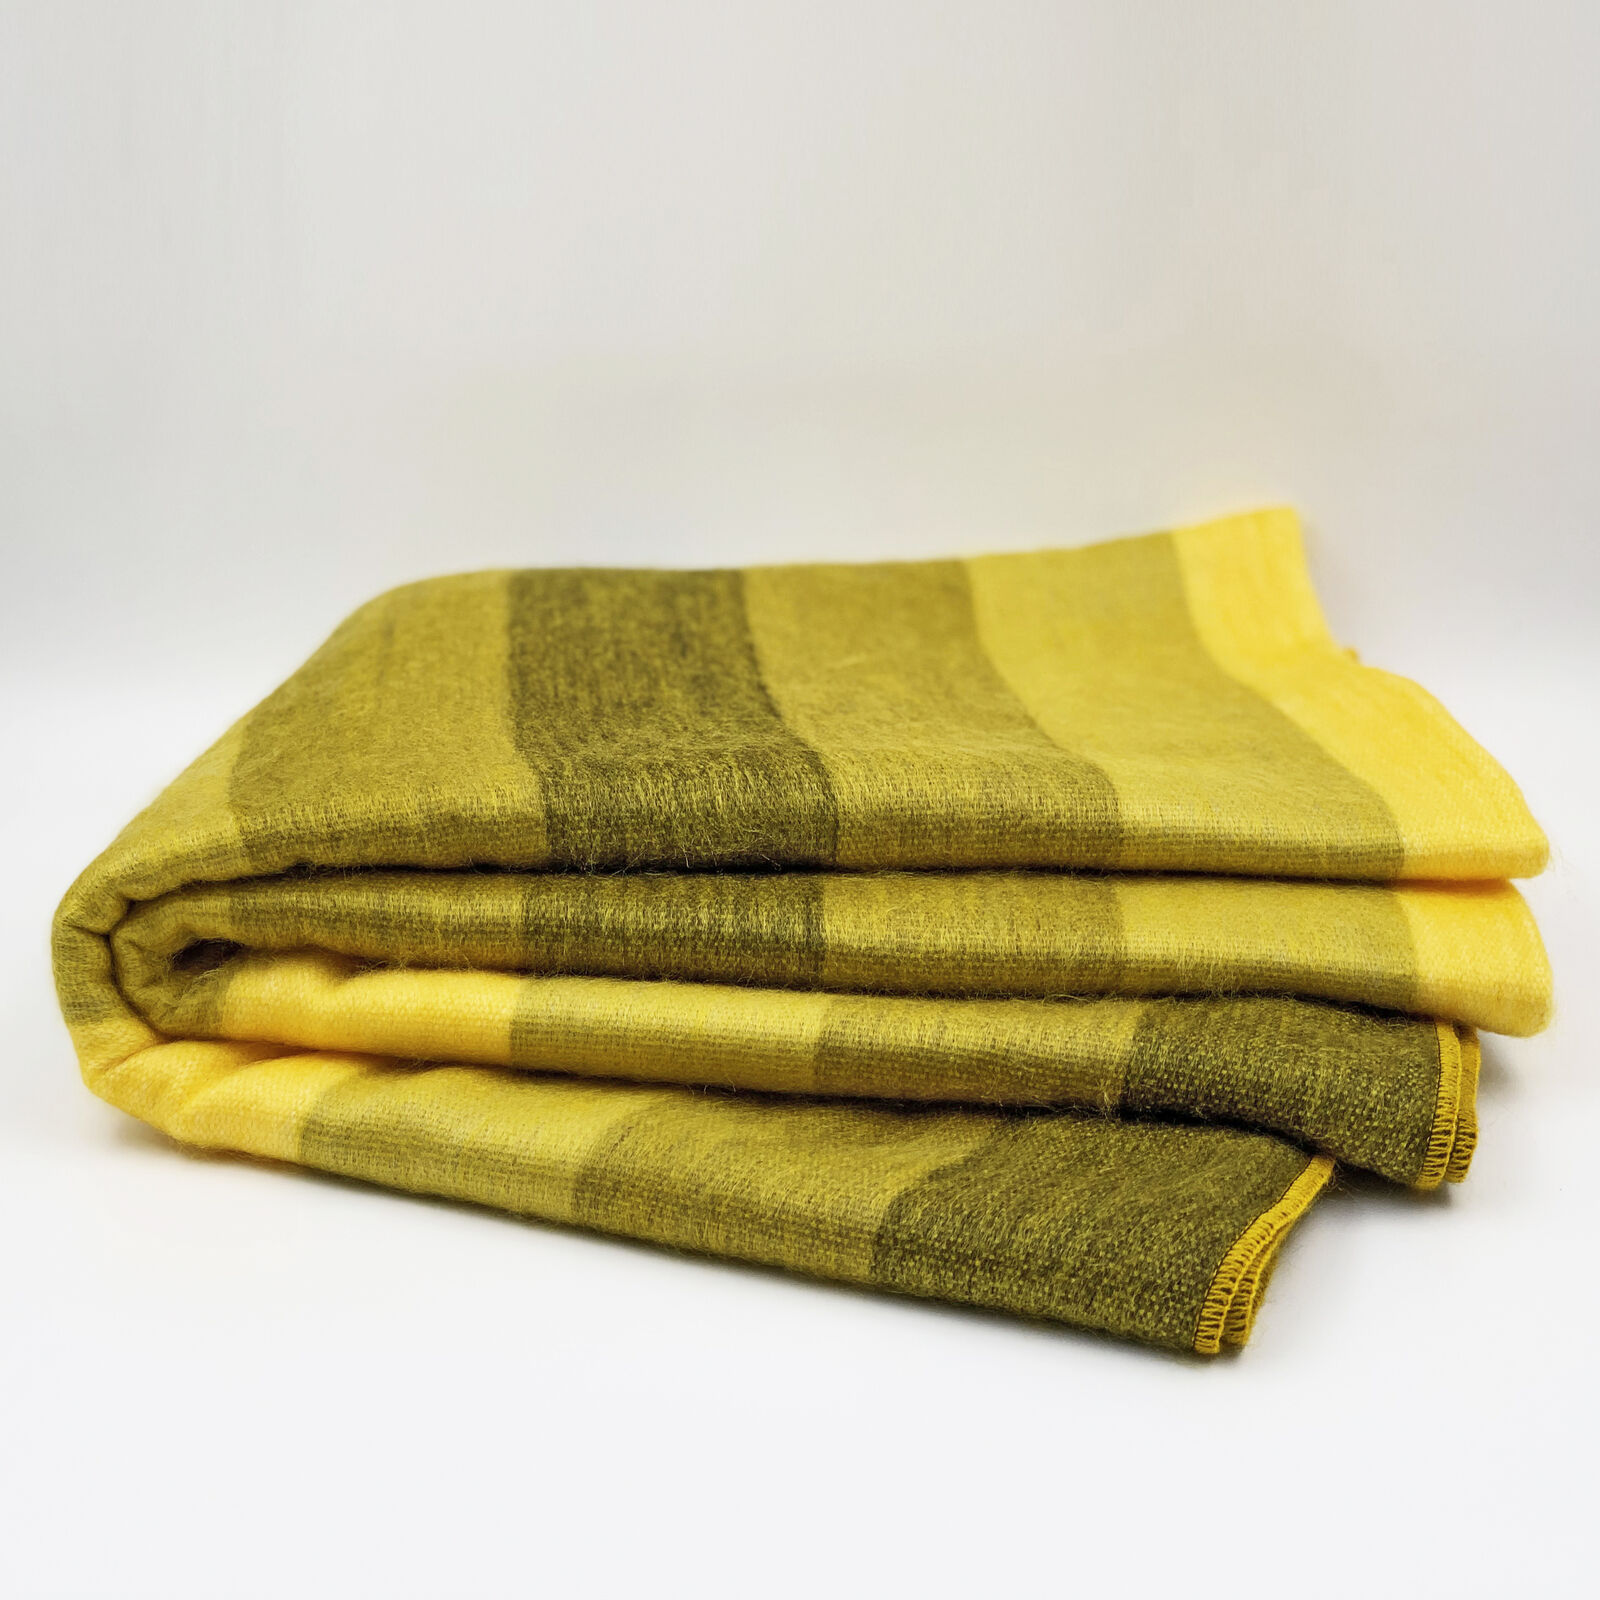 BABY ALPACA WOOL THROW BLANKET QUEEN BED COUCH YELLOW STRIPED SOFT&WARM 90x67in